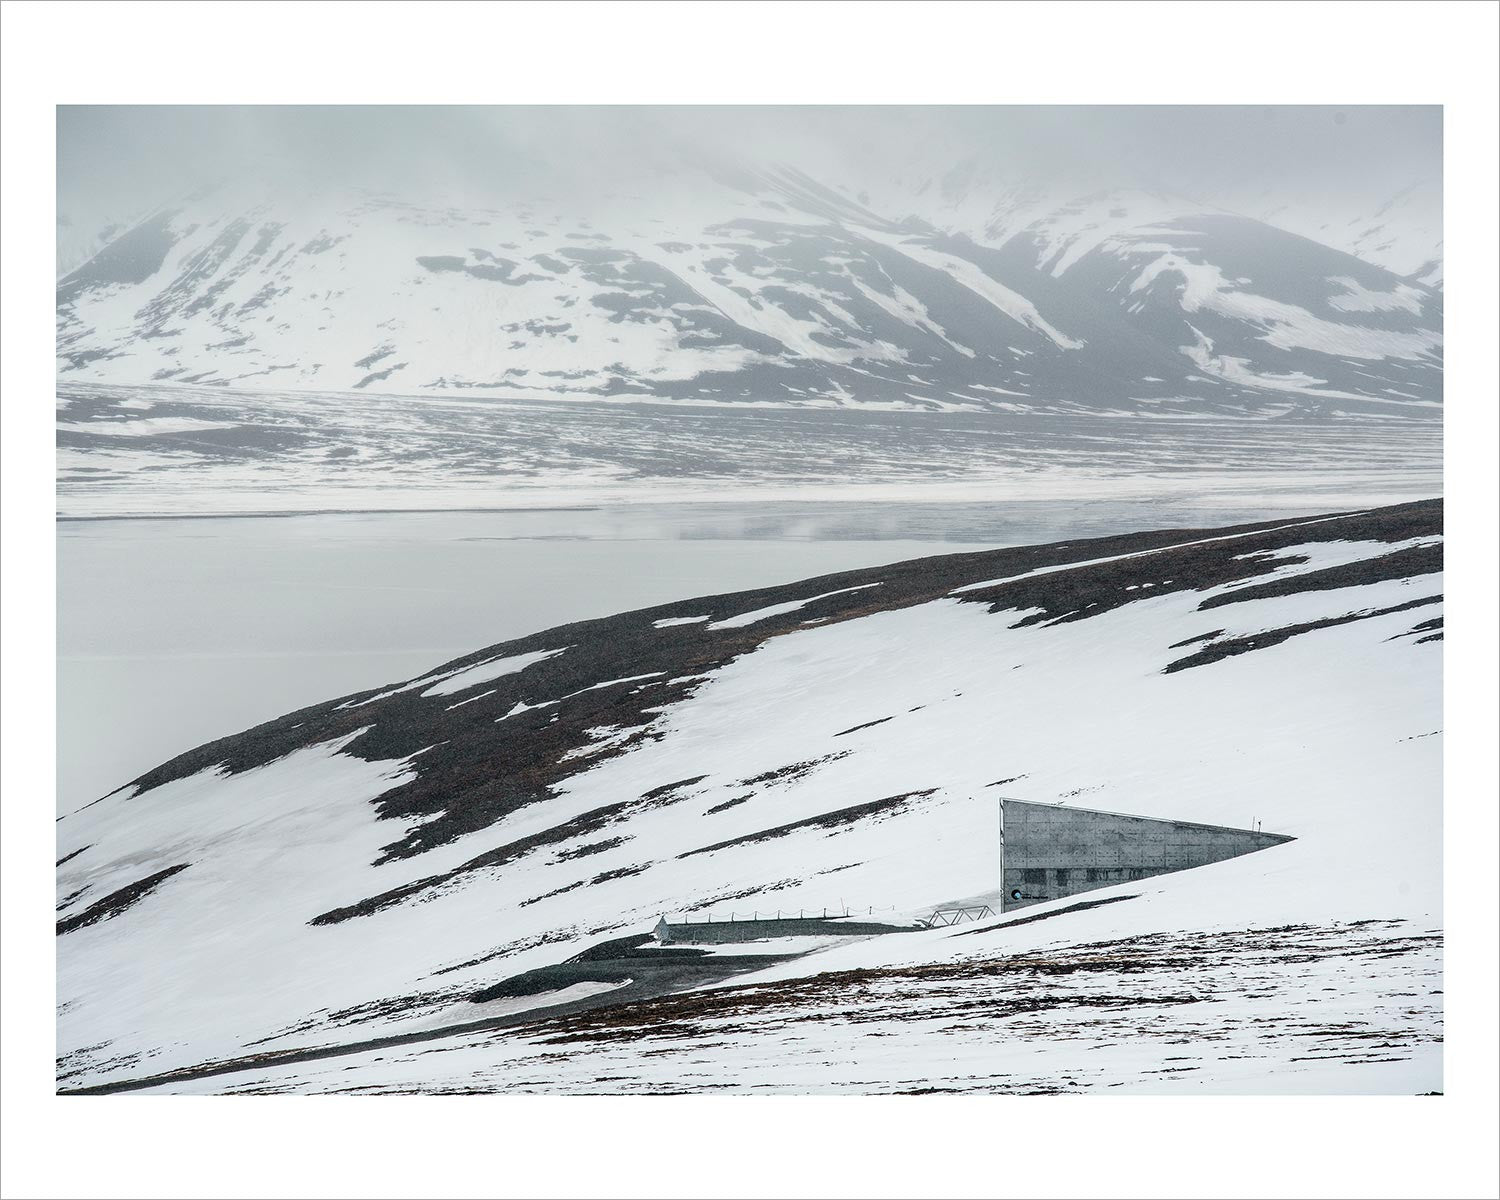 Magnum Distribution: The Svalbard Global Seed Vault